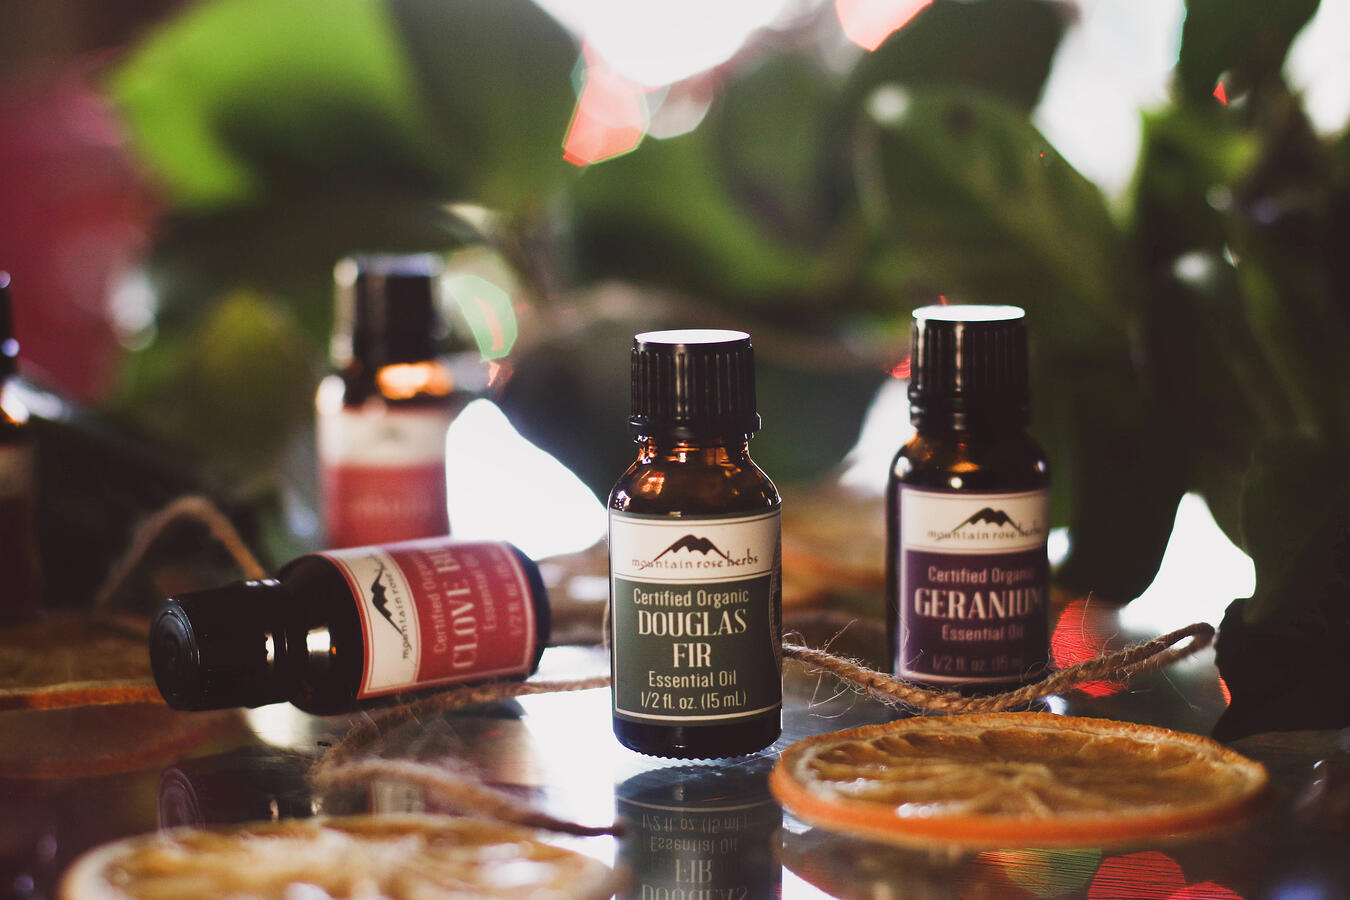 Essential oils on a table with greens ready to blend to make diy potpourri.